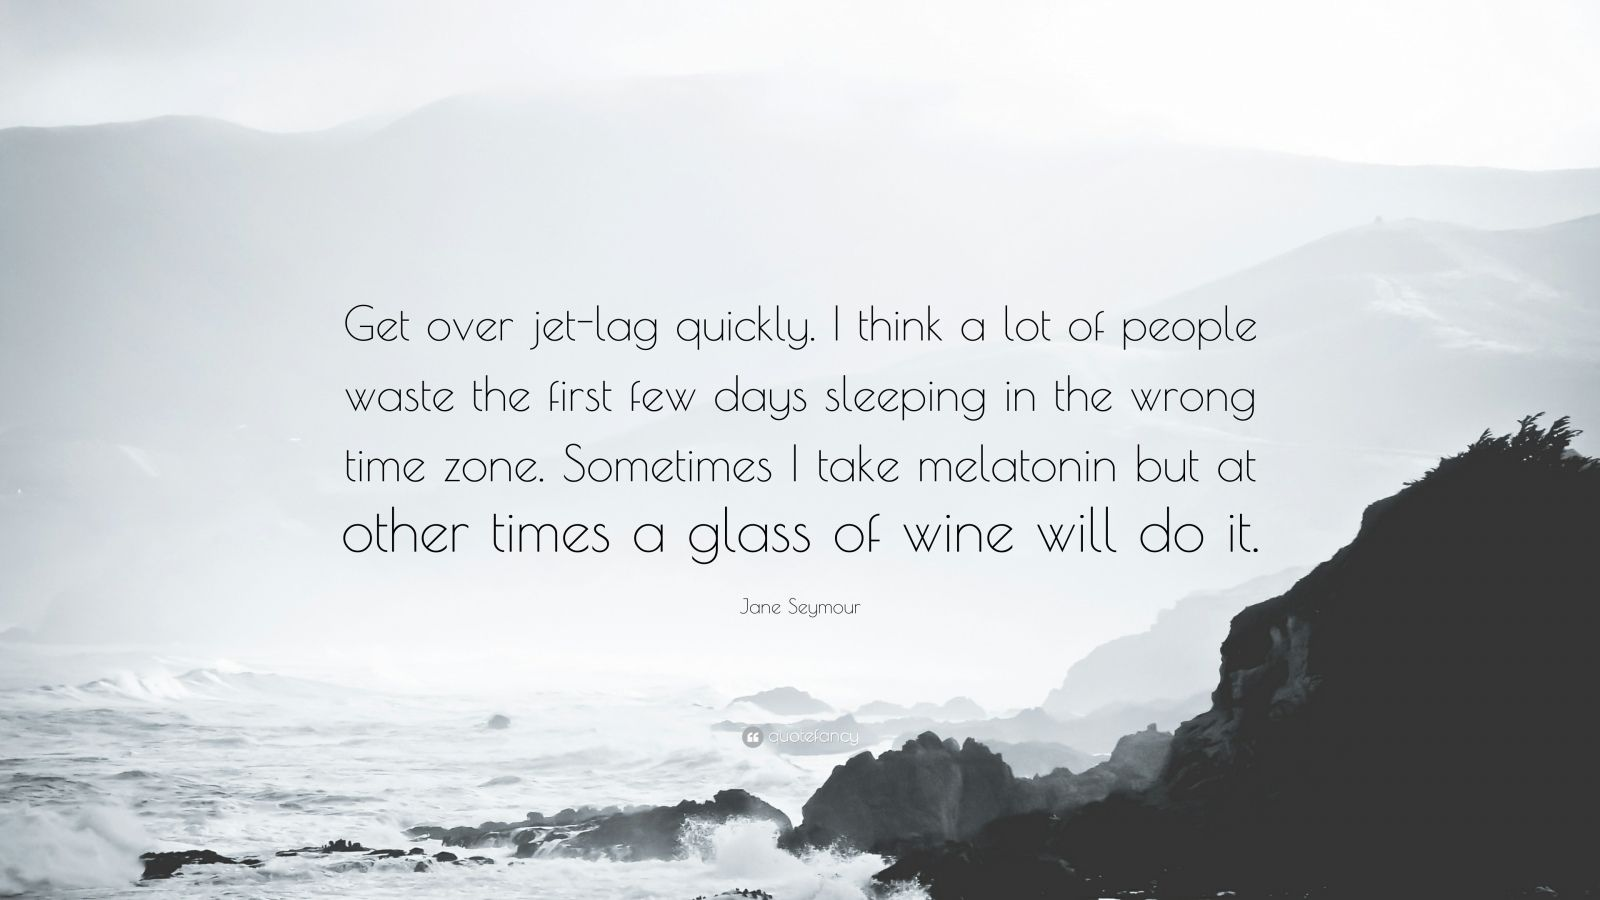 """Jane Seymour Quote: """"Get over jet-lag quickly. I think a lot of people waste the first few days sleeping in the wrong time zone. Sometimes I take melatonin but at other times a glass of wine will do it."""""""